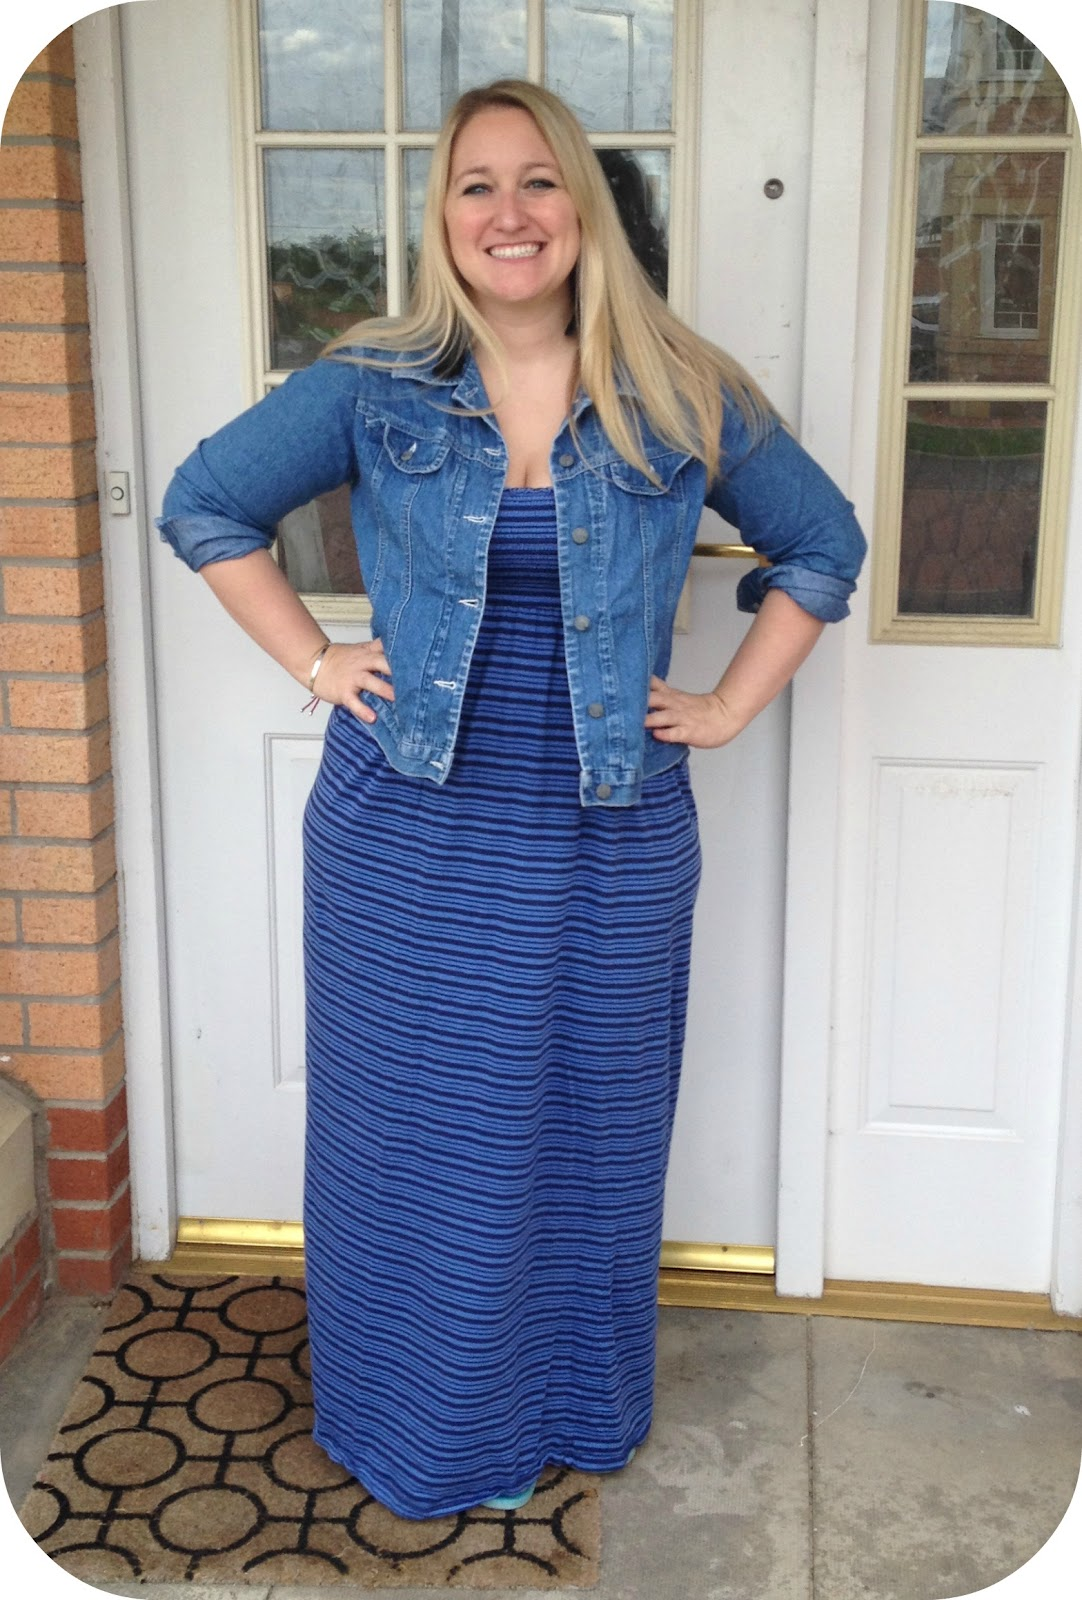 Transatlantic Blonde: What I Wore Wednesday: Maxi Dress and Old ...